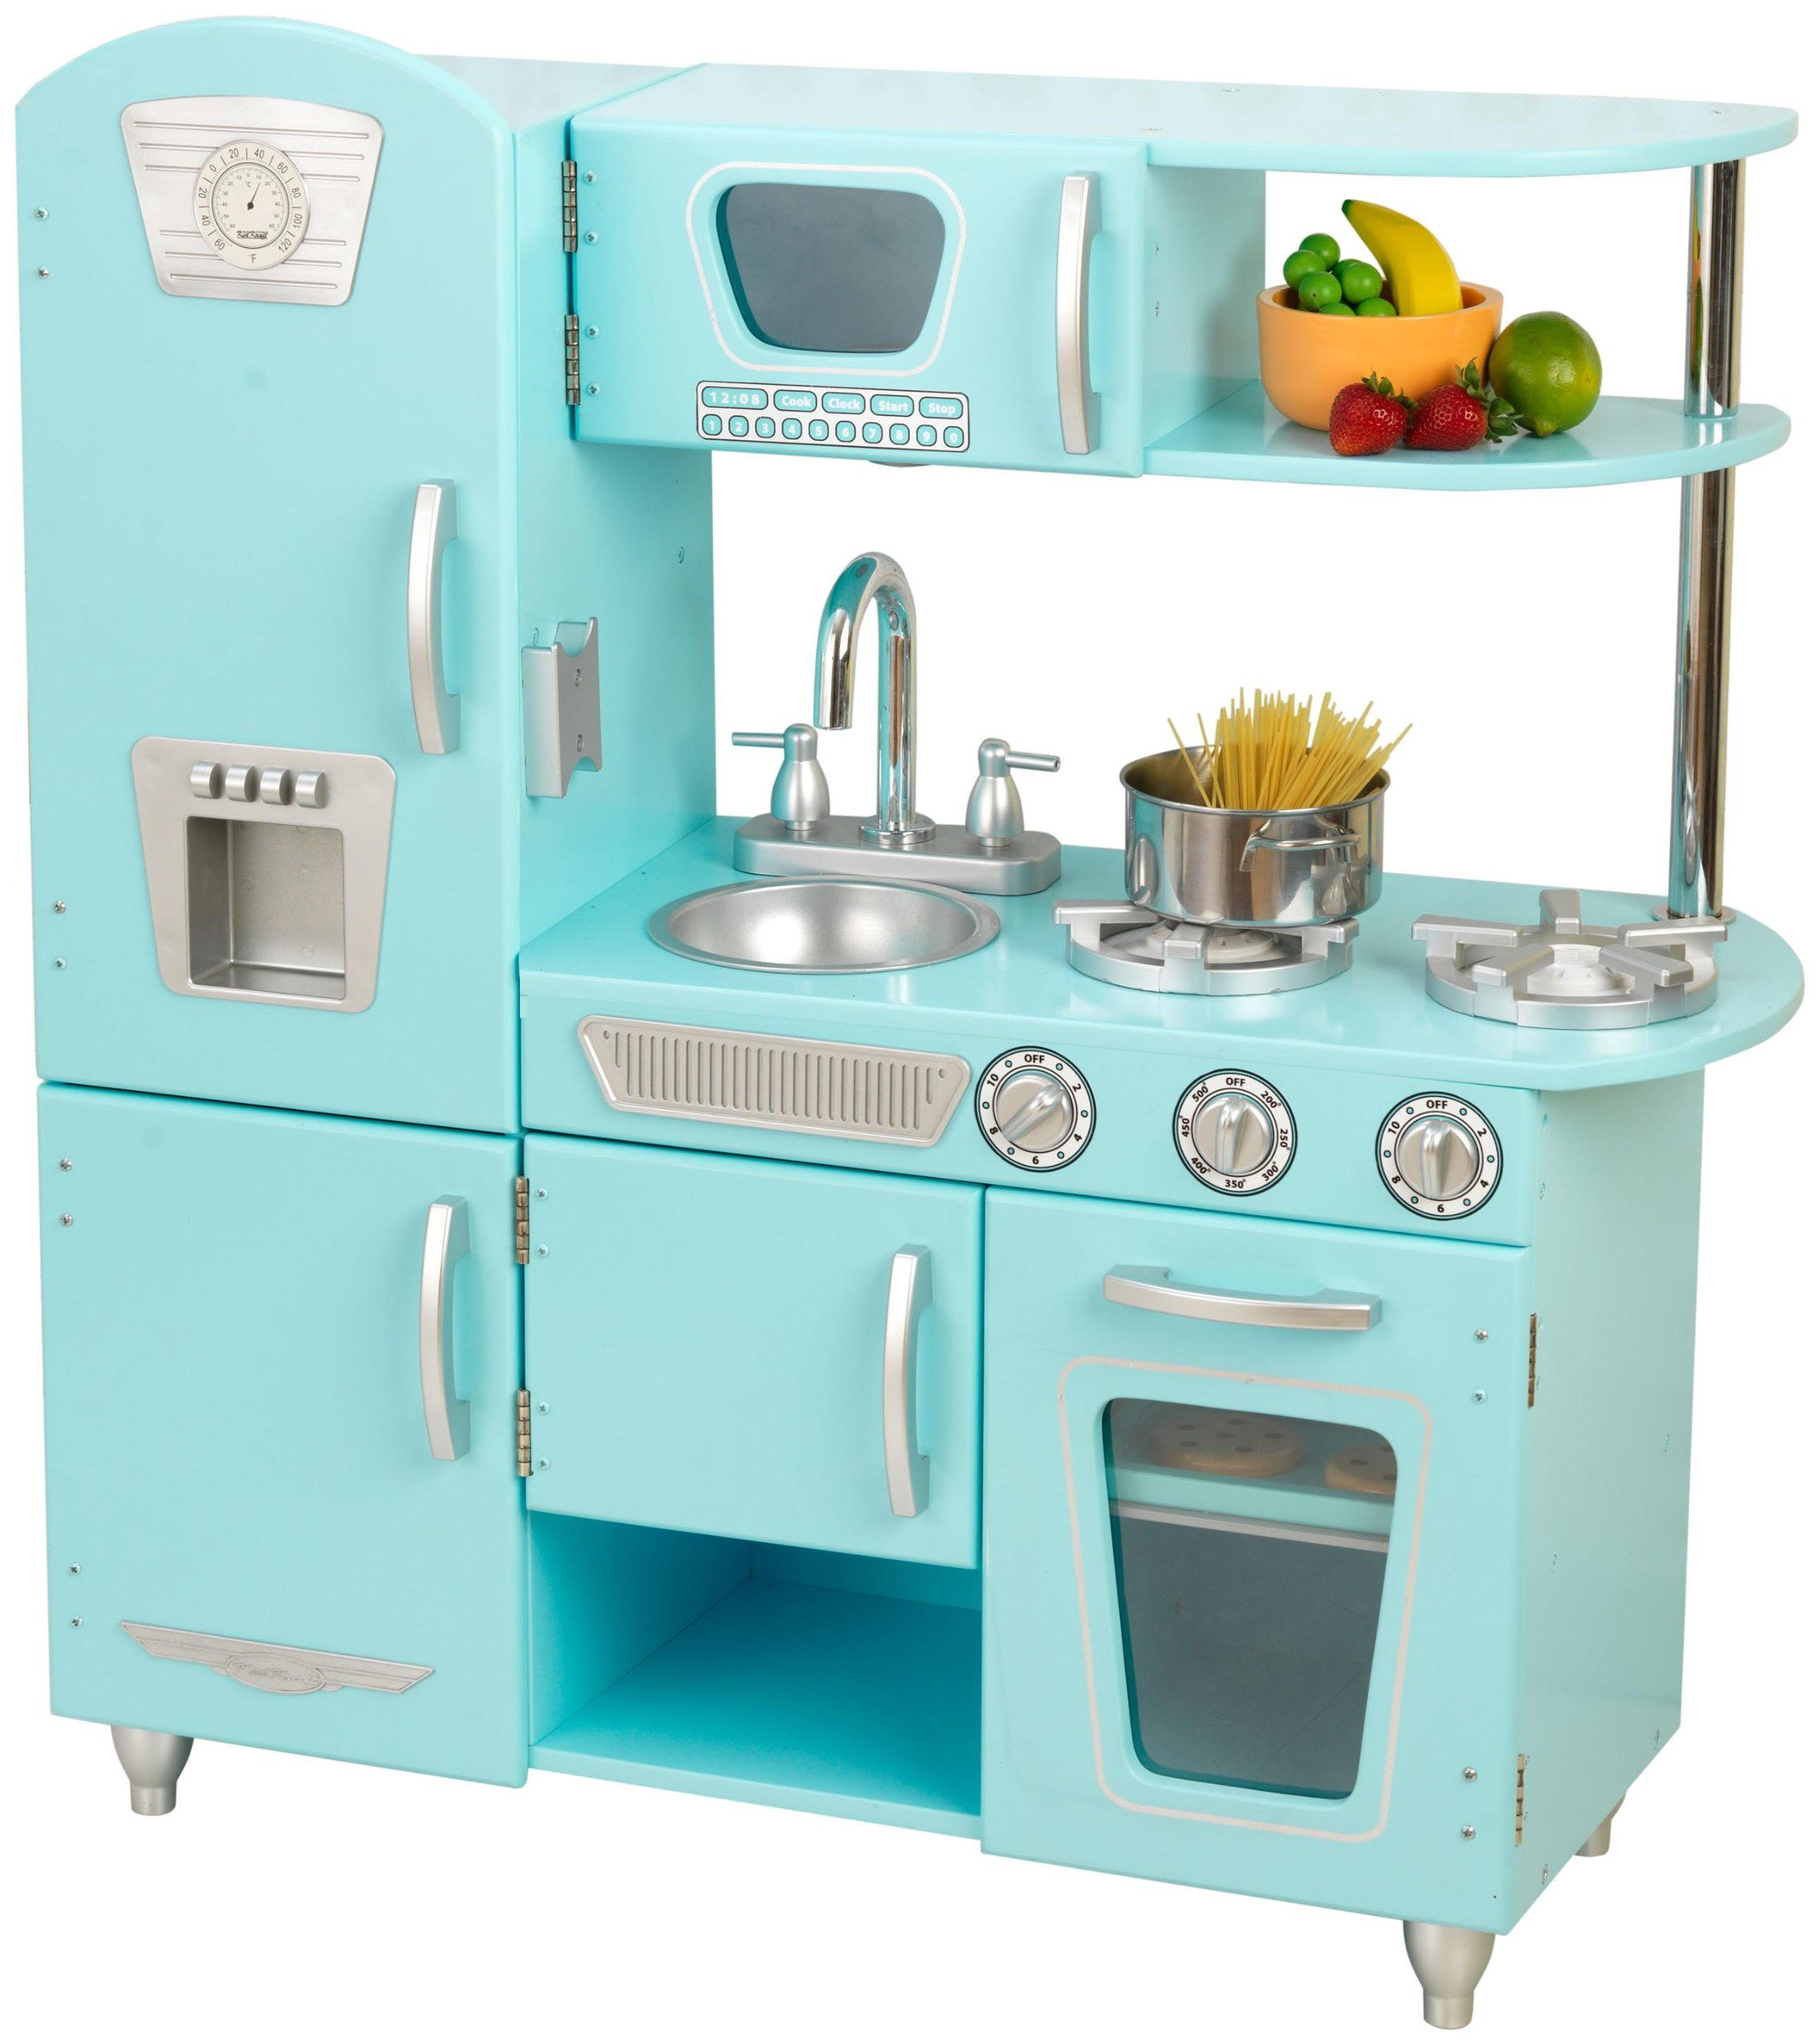 Amazon.com: KidKraft Vintage Kitchen in Blue: Toys & Games | Kid ...